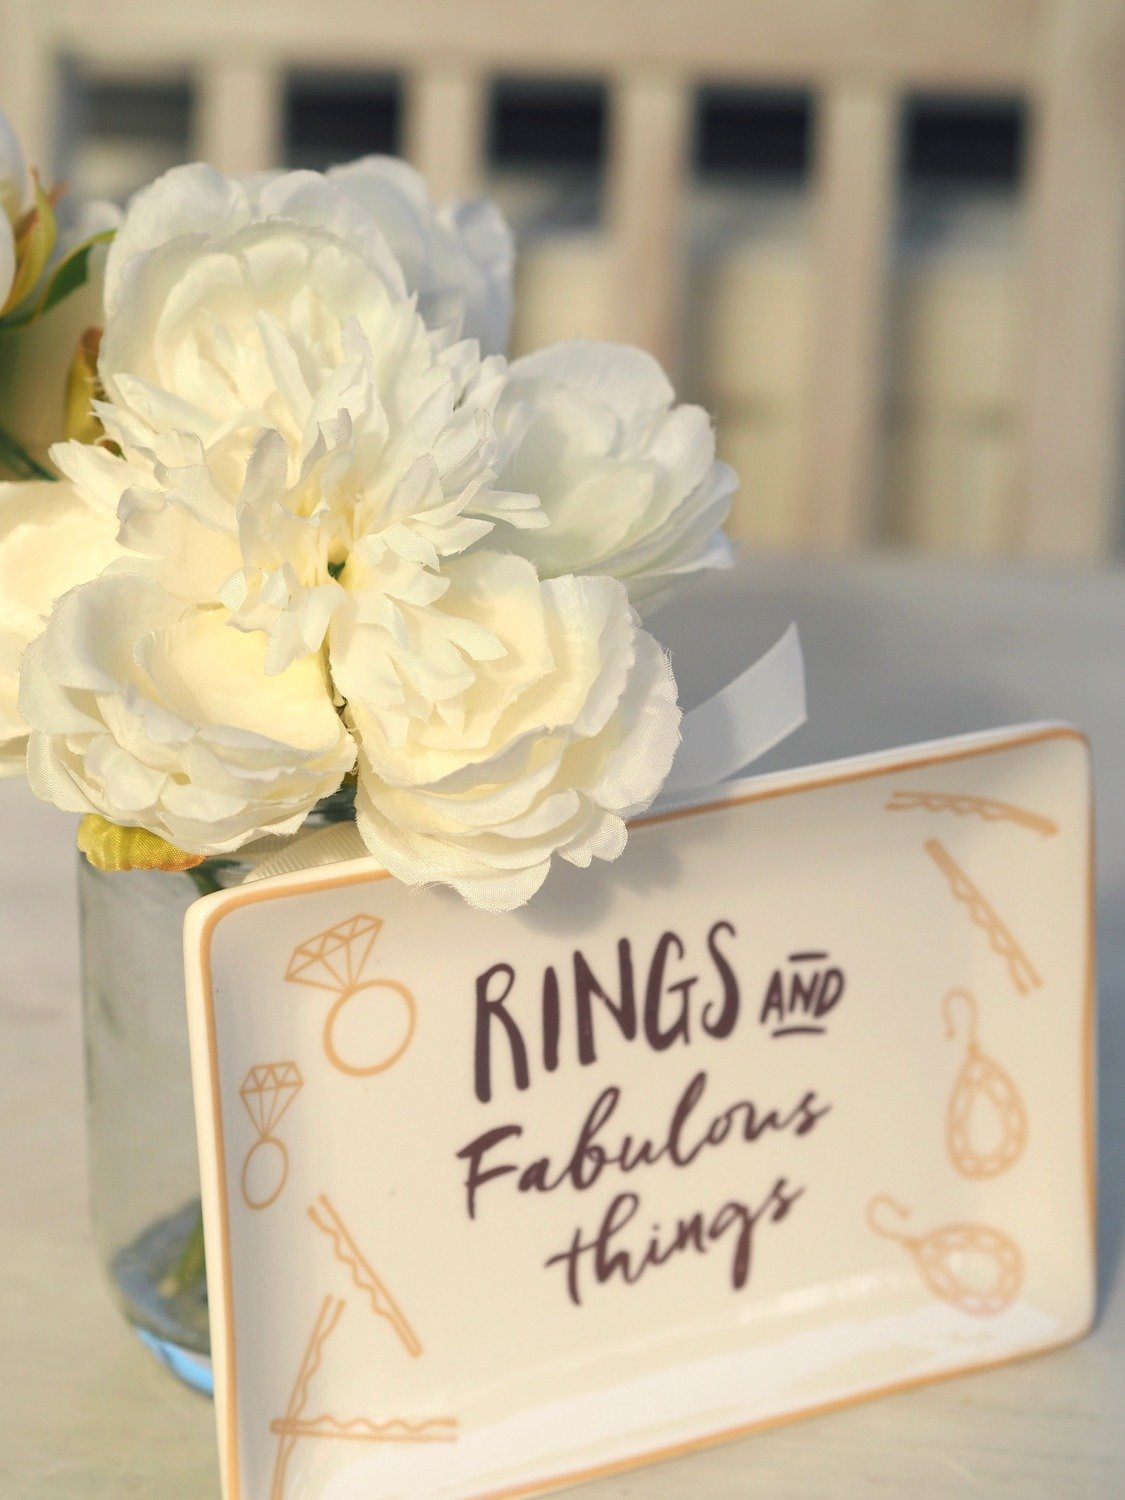 Rings And Fabulous Things Dish